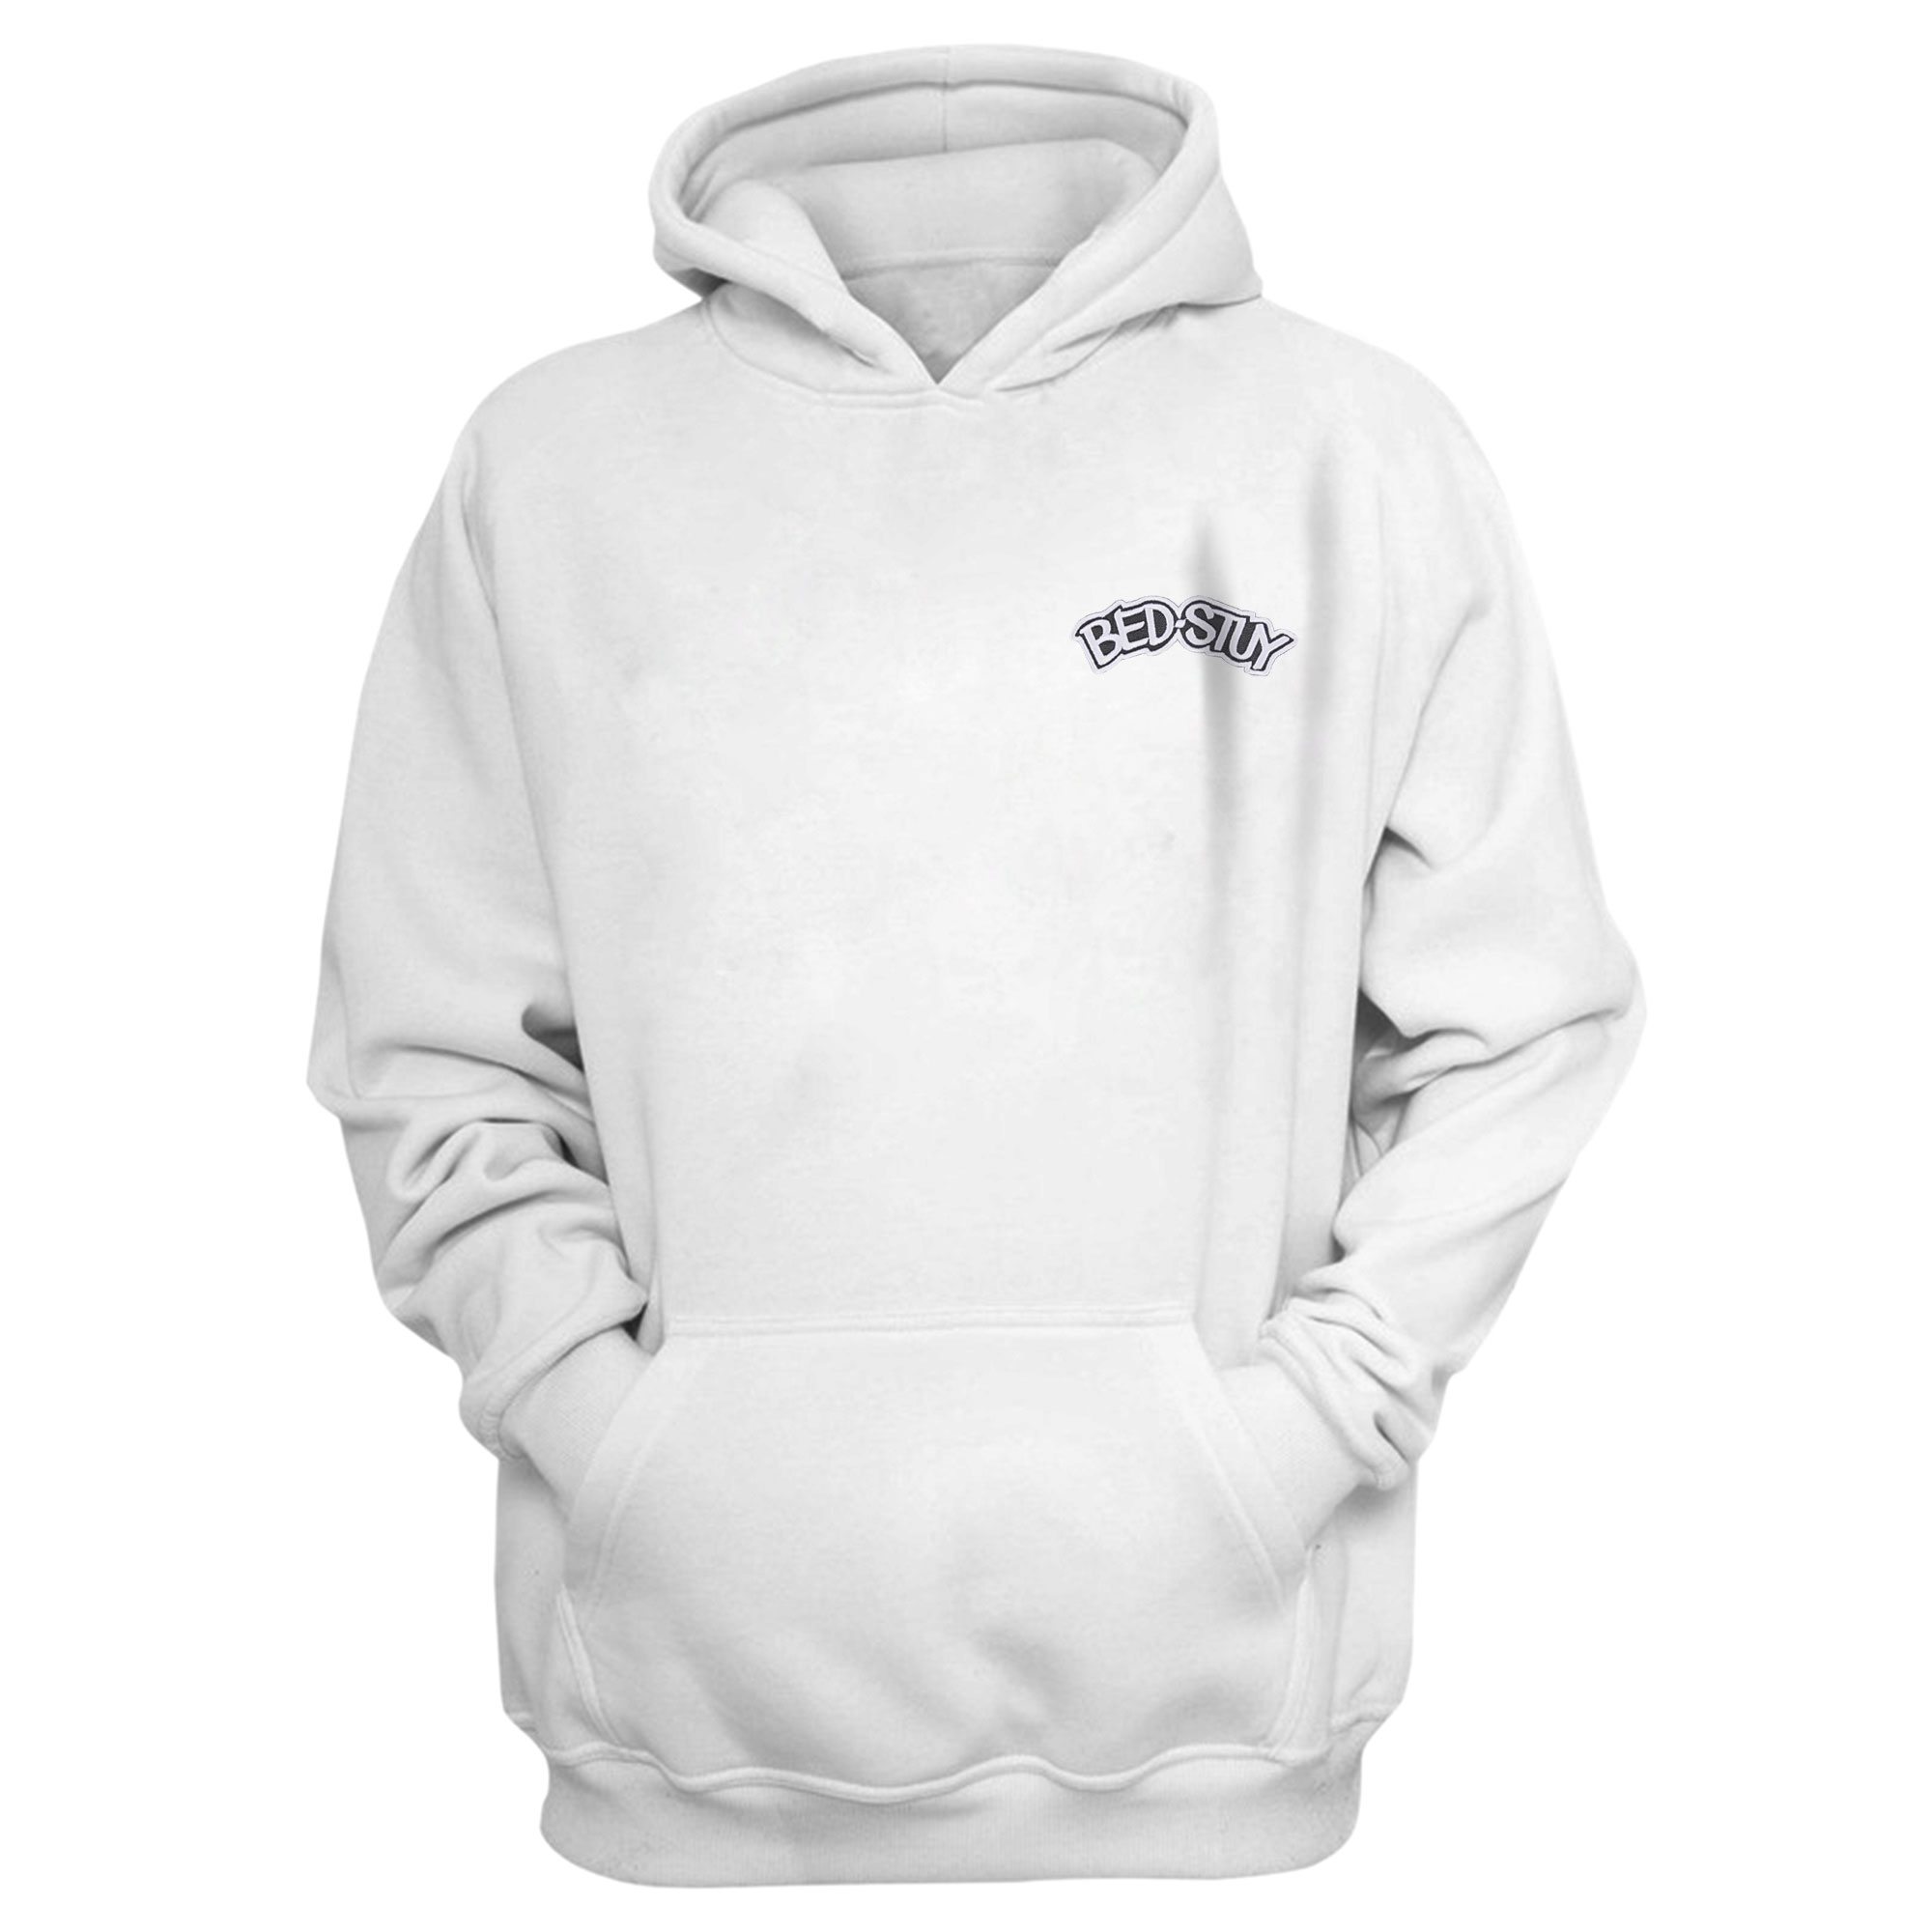 Brooklyn Nets Bed Stuy Hoodie (Örme)  (HD-BLC-EMBR-BEDSTUY)